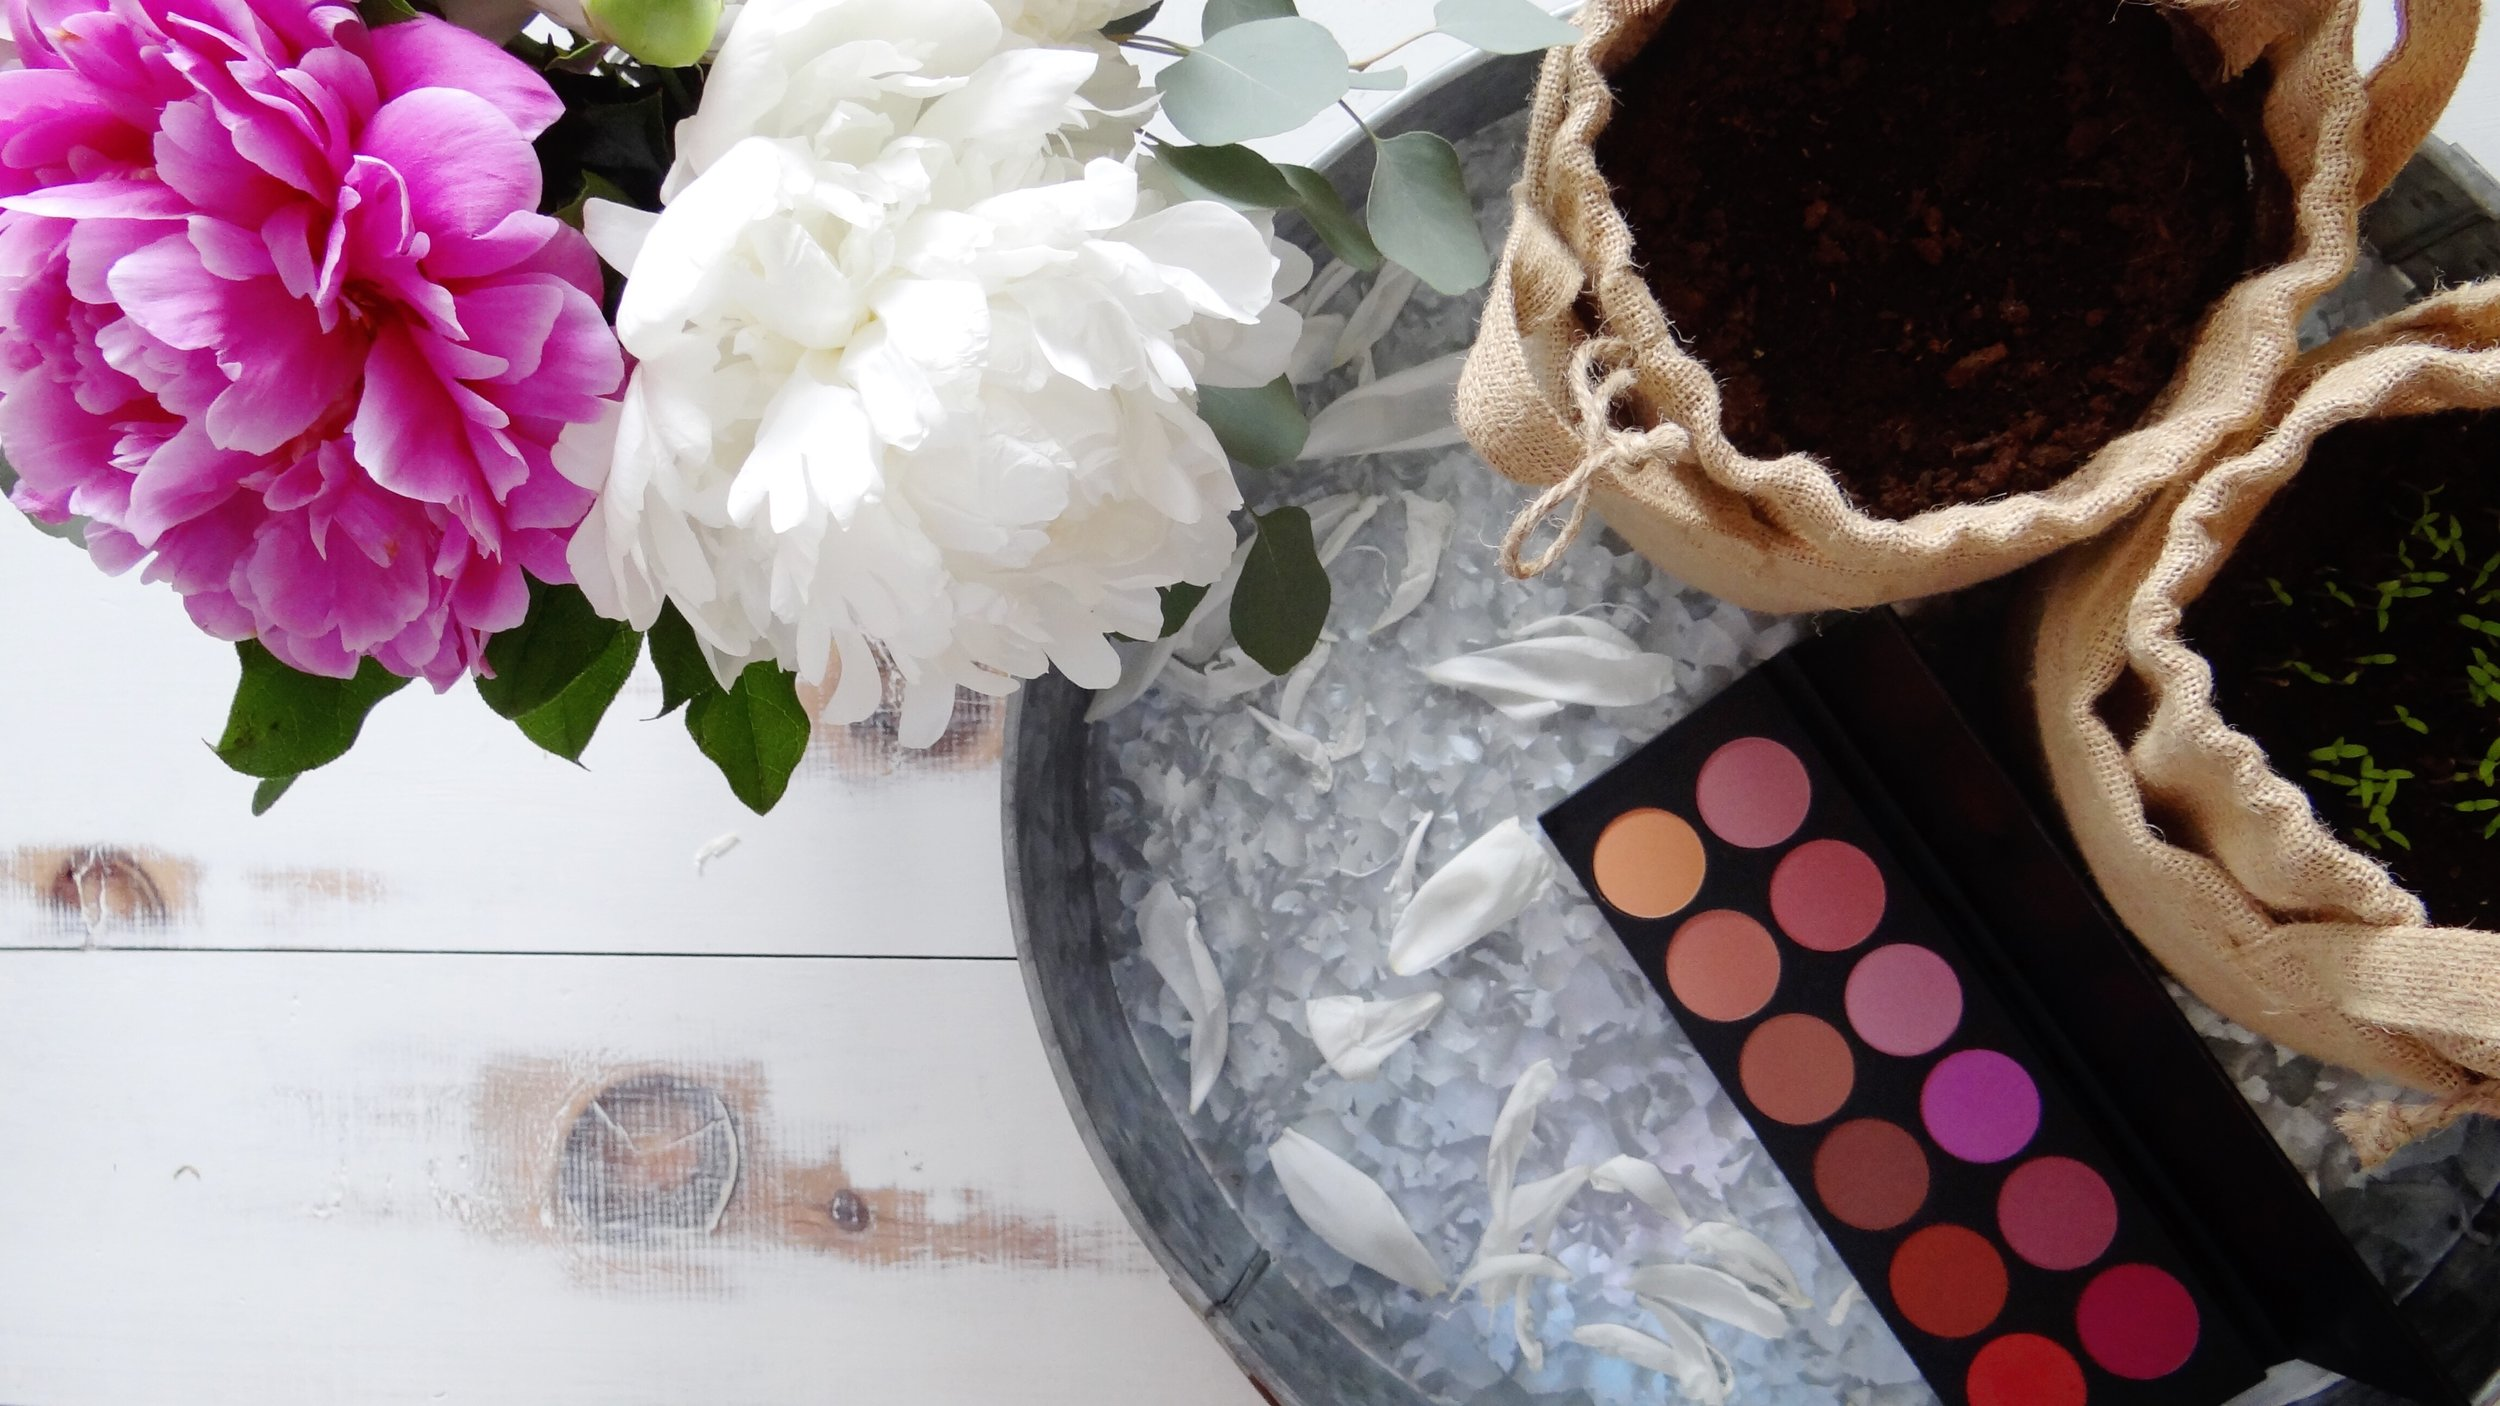 Building a Cruelty-Free Professional Makeup Kit: Blush - Artistry by Jacquie, Ottawa Makeup Artist